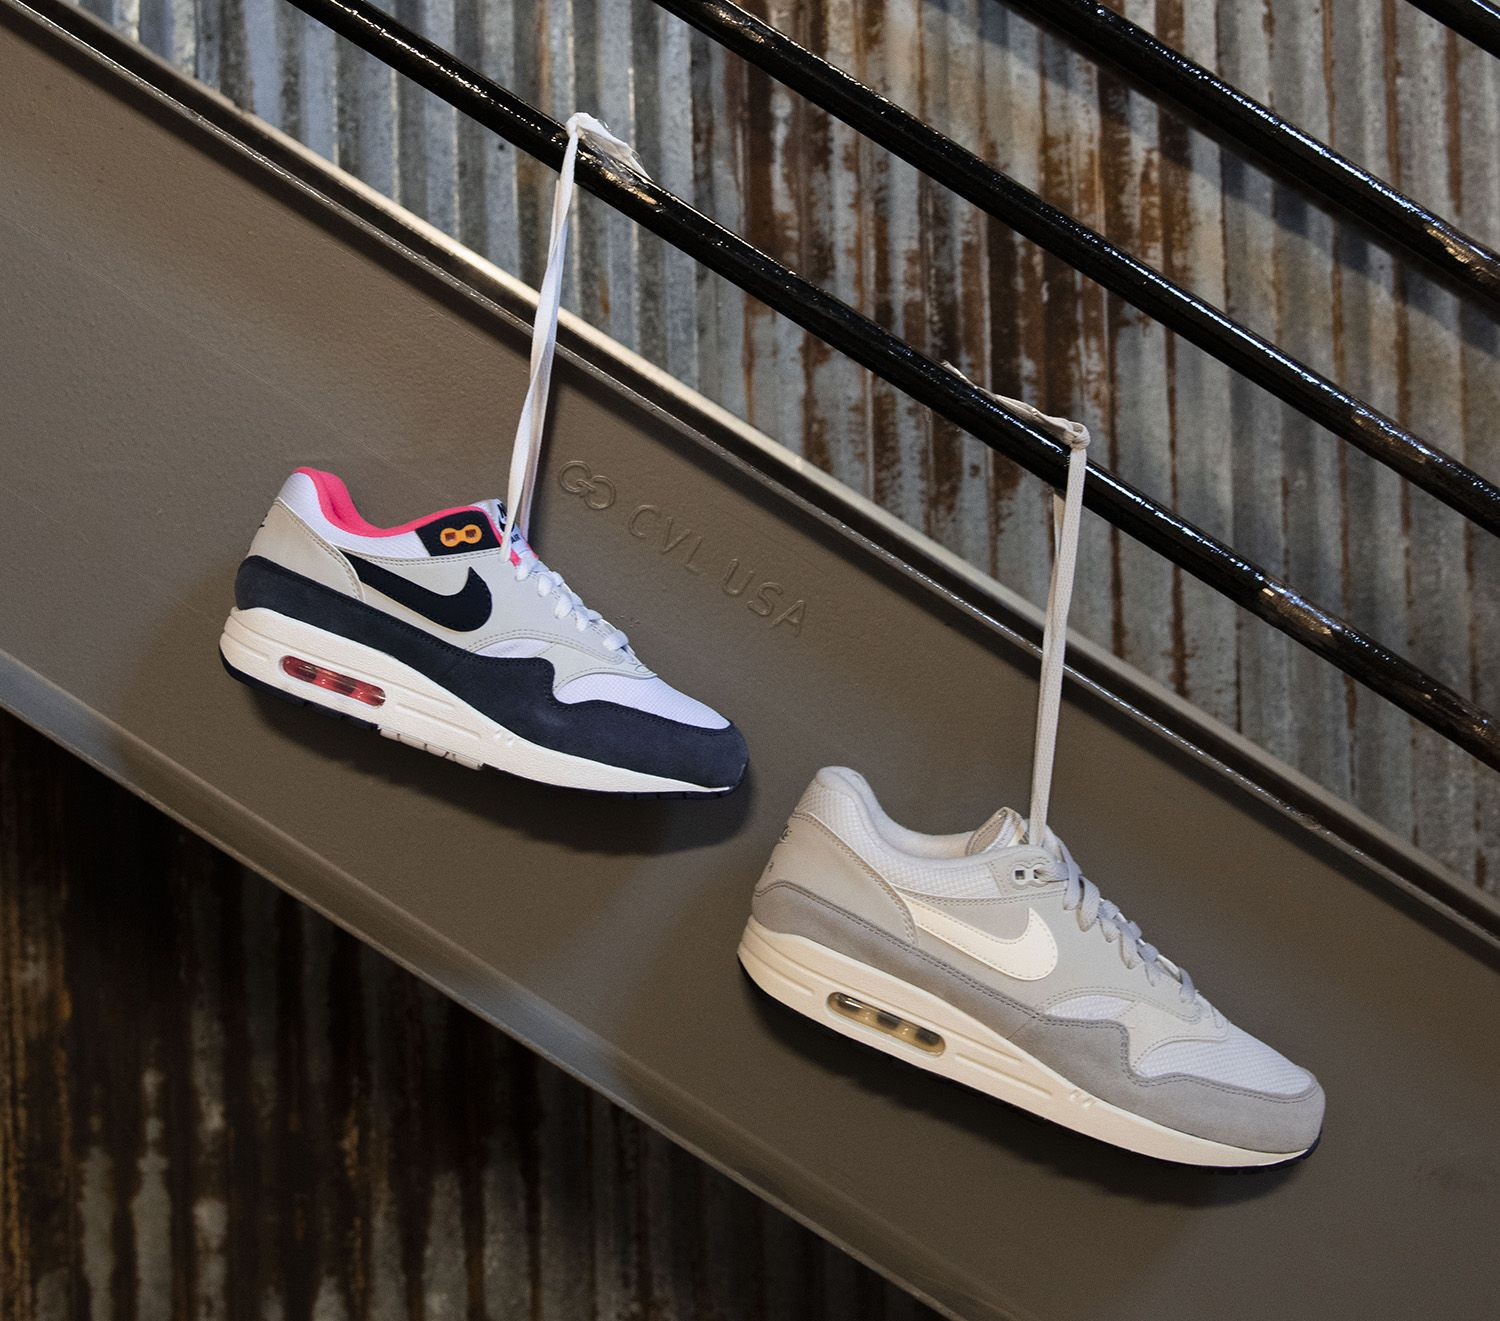 new style 1c71b 1ddb1 Nike Air Max 1 Shoe tells a classic Nike story in leather and textile. These